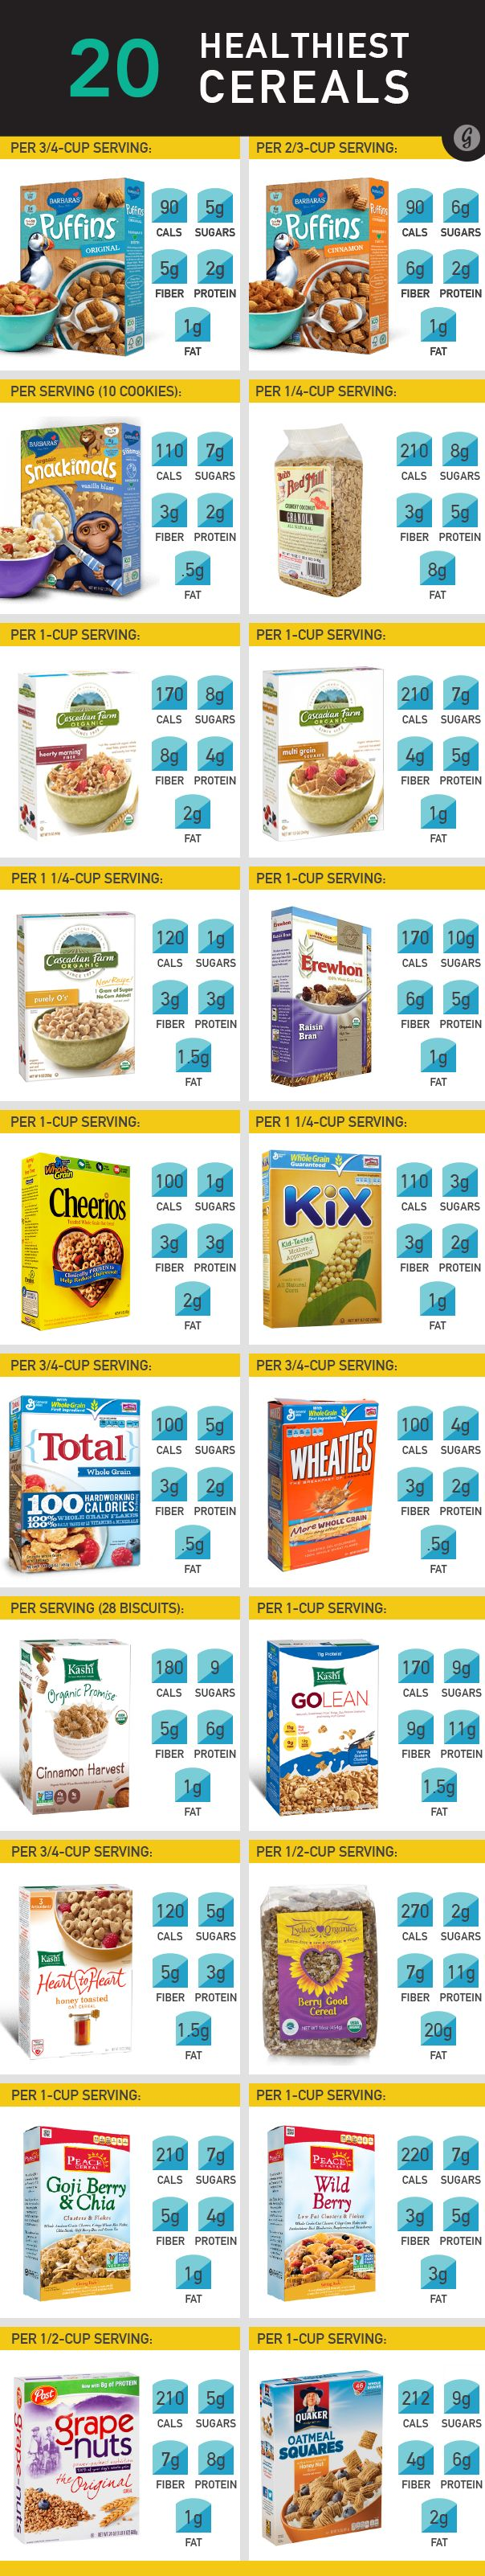 Cereal often gets a bad rap for being packed with sugar, low in protein, and generally lacking nutritional value, but not these 20 nutritionist-approved picks! #cereal #breakfast http://greatist.com/health/best-healthy-cereal-brands